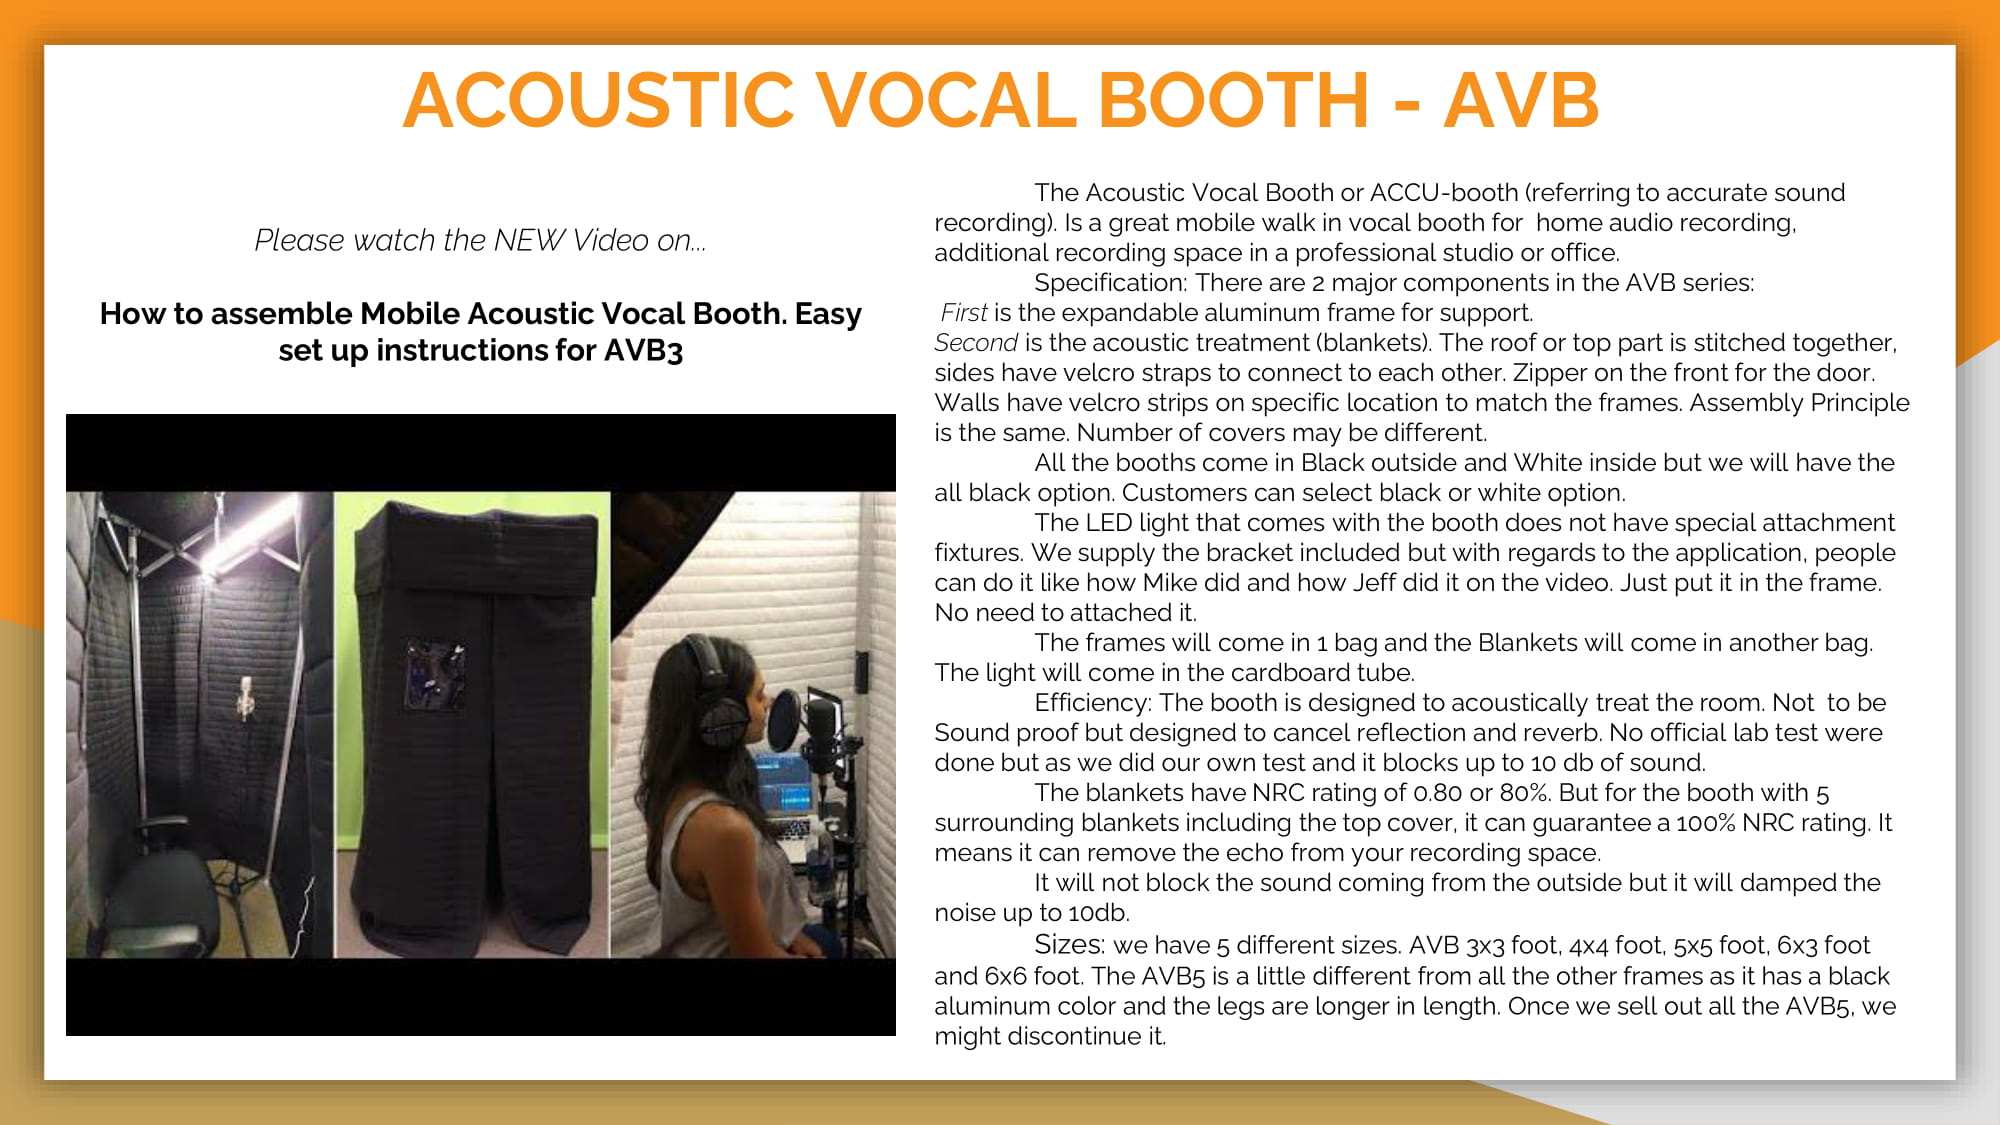 ACOUSTIC VOCAL BOOTH - AVB